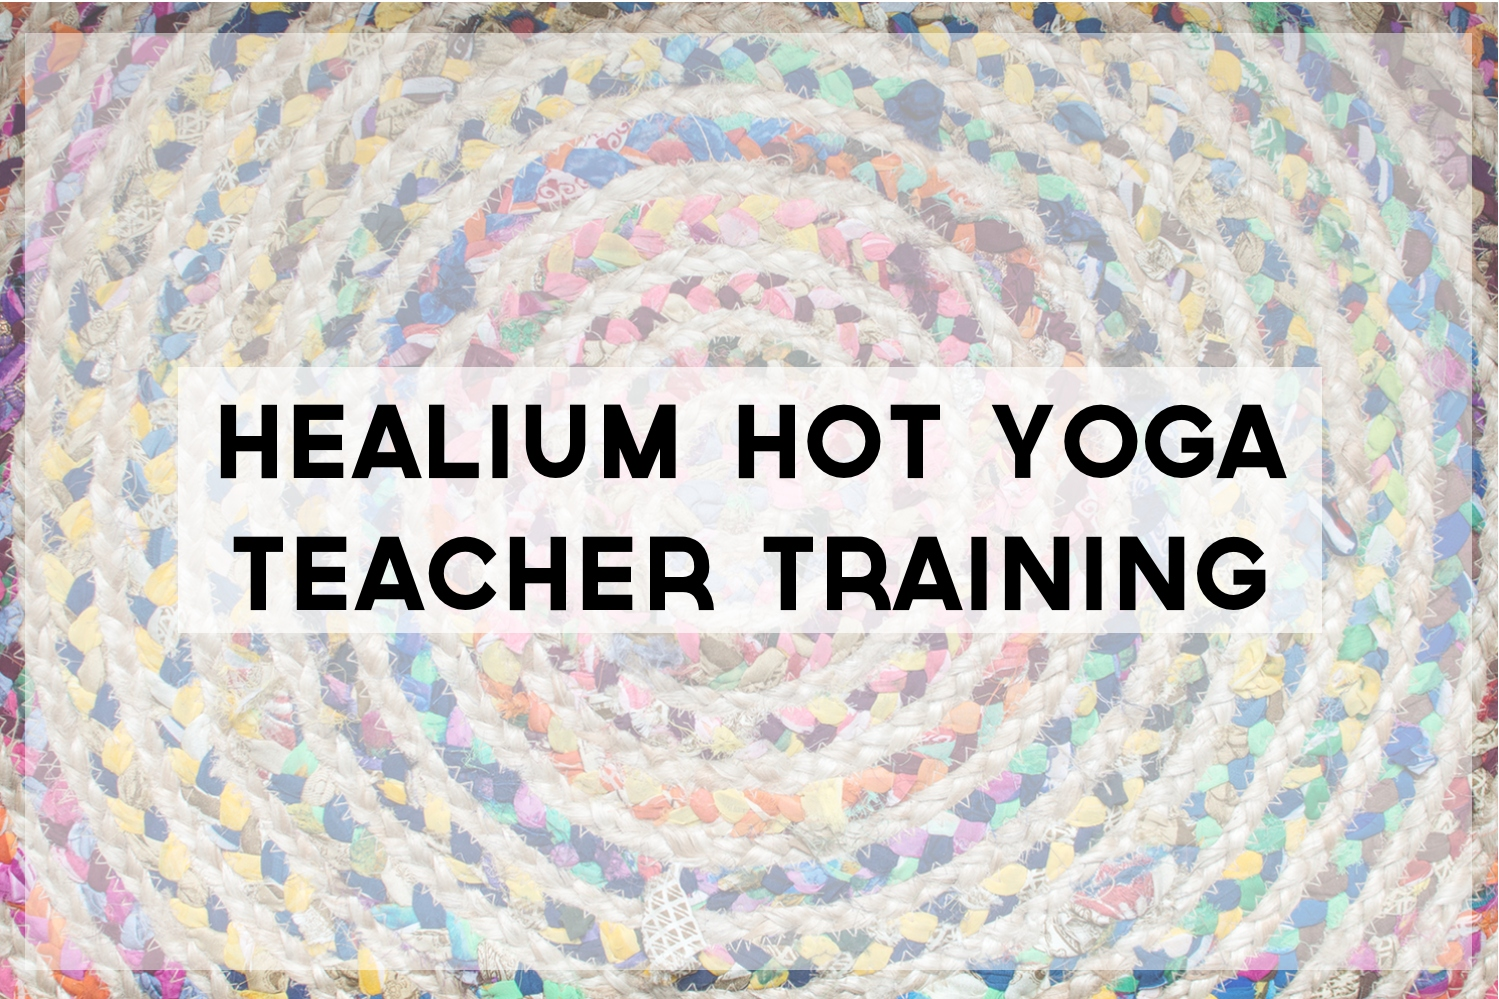 teacher training banner.jpg